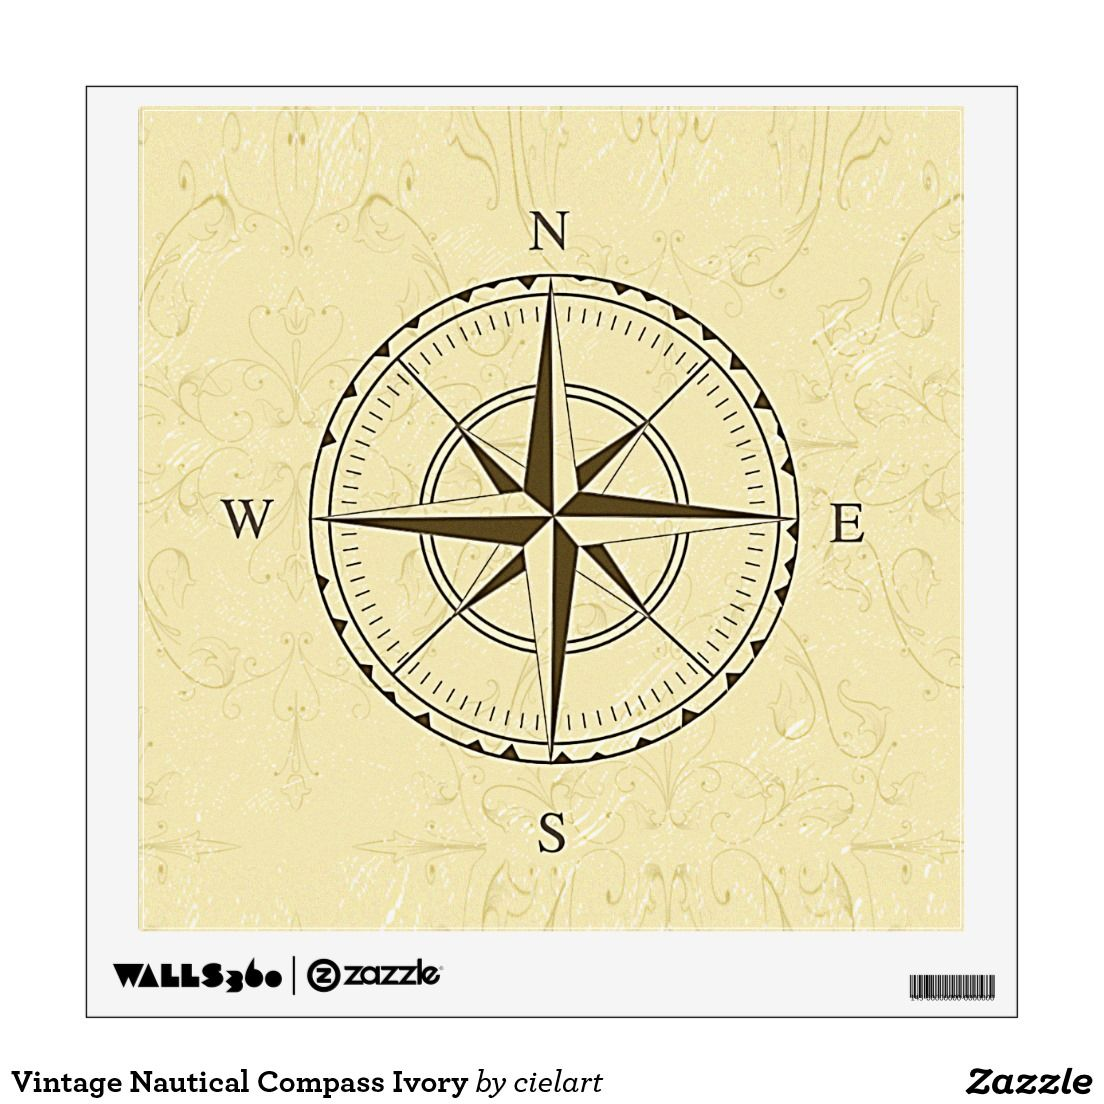 Vintage Nautical Compass Ivory Wall Decal | Vintage Nautical Compass ...